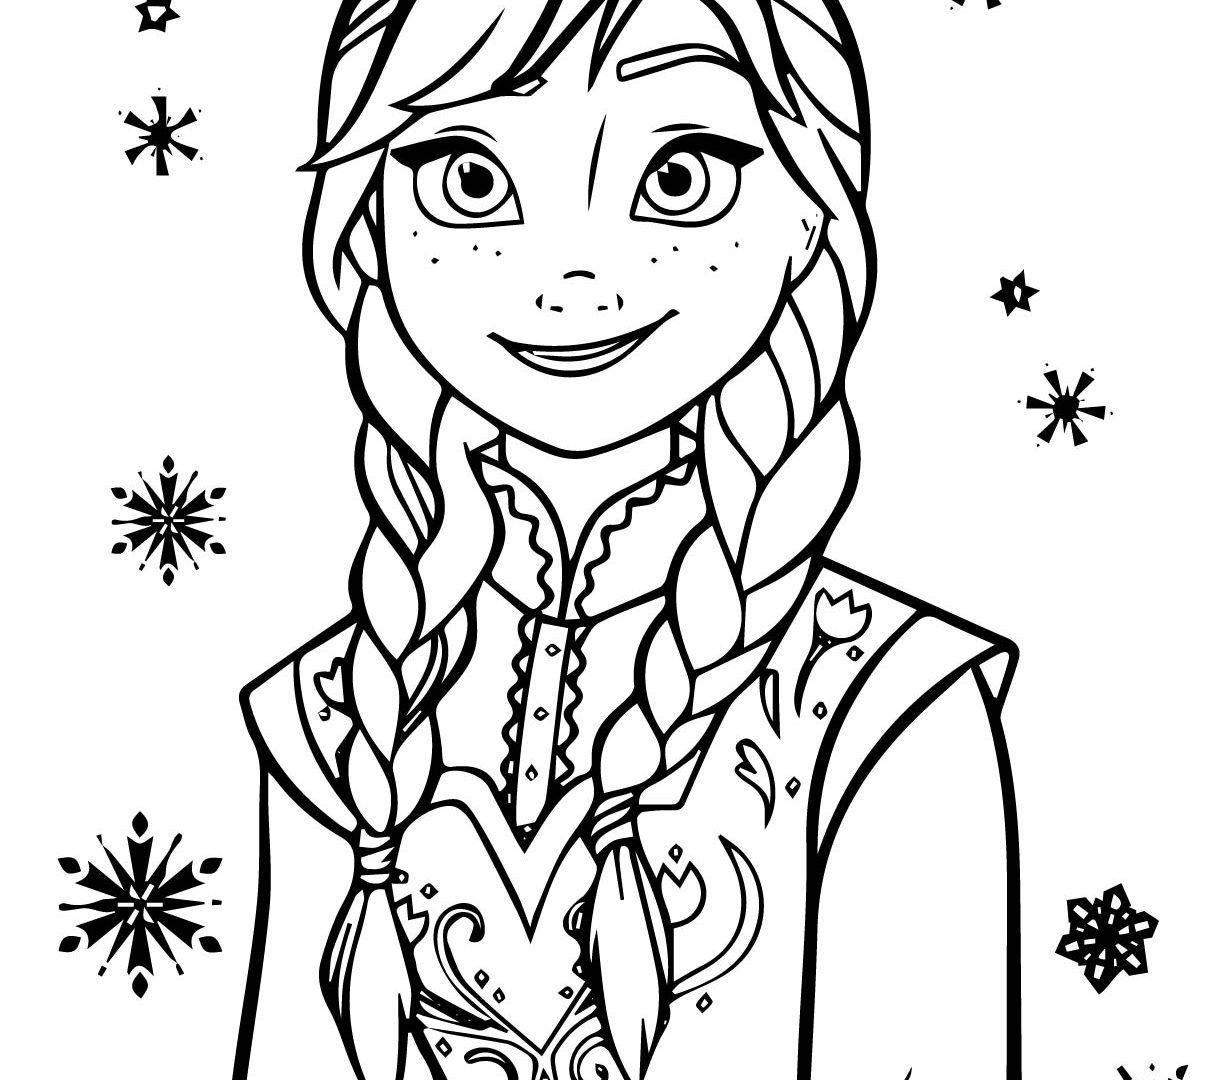 Elsa Frozen Drawing at GetDrawings.com | Free for personal use Elsa ...